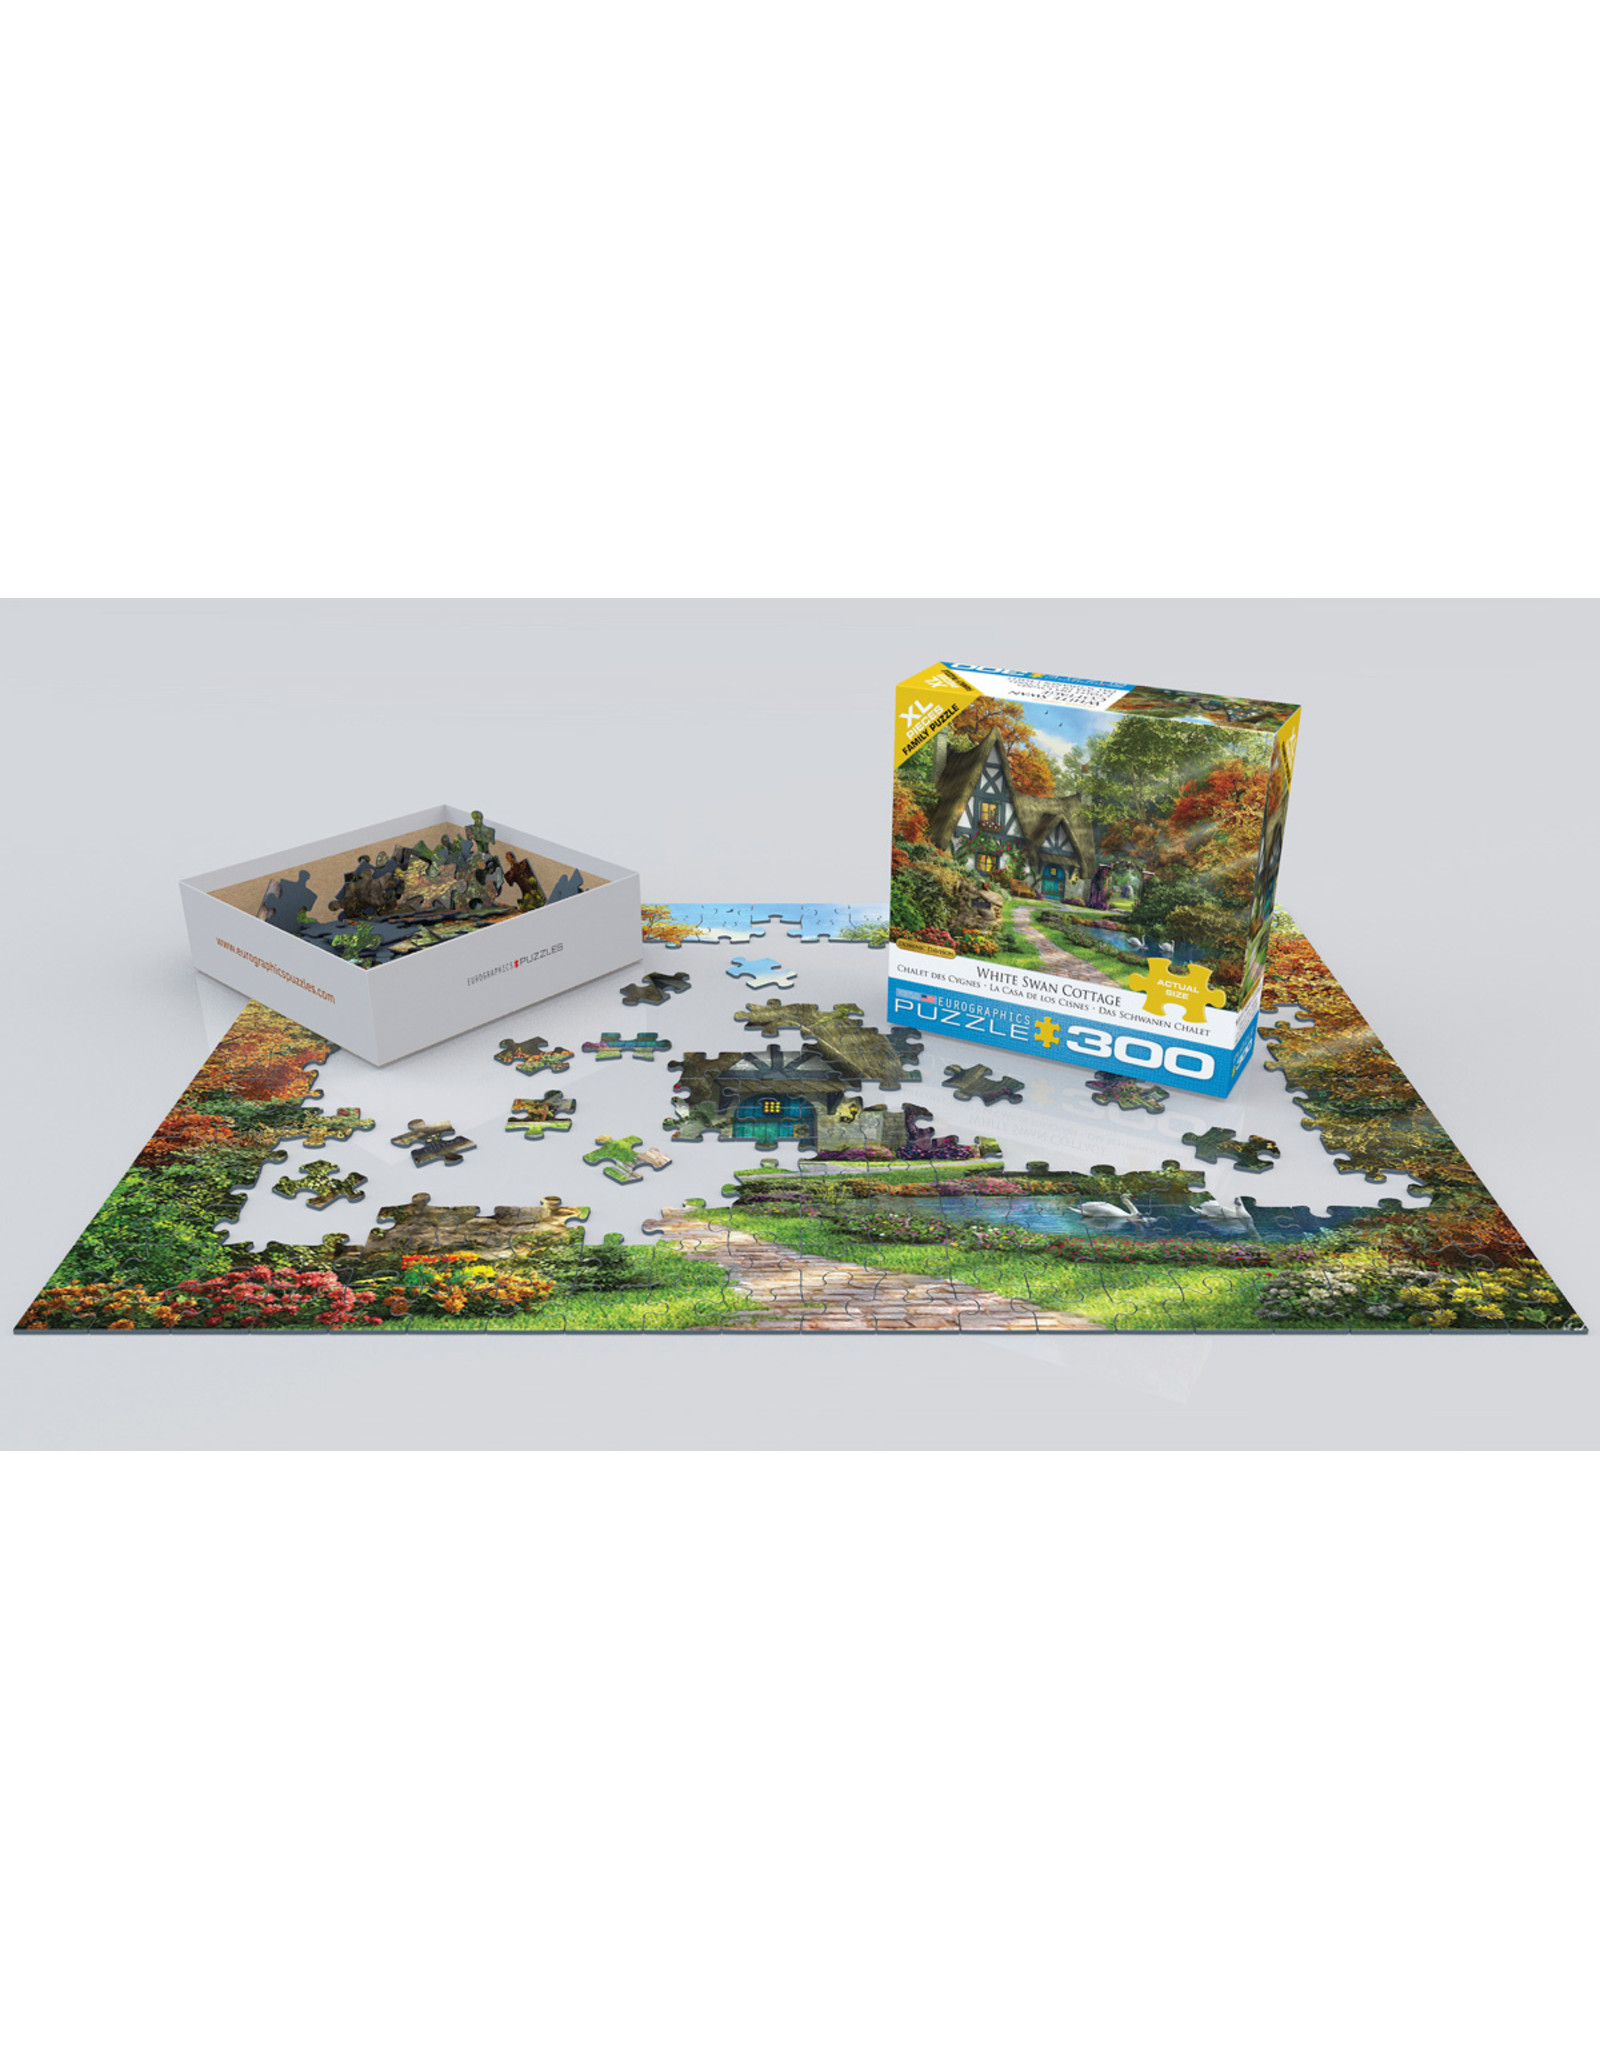 "Eurographics ""White Swan Cottage"" 300 Piece Puzzle"